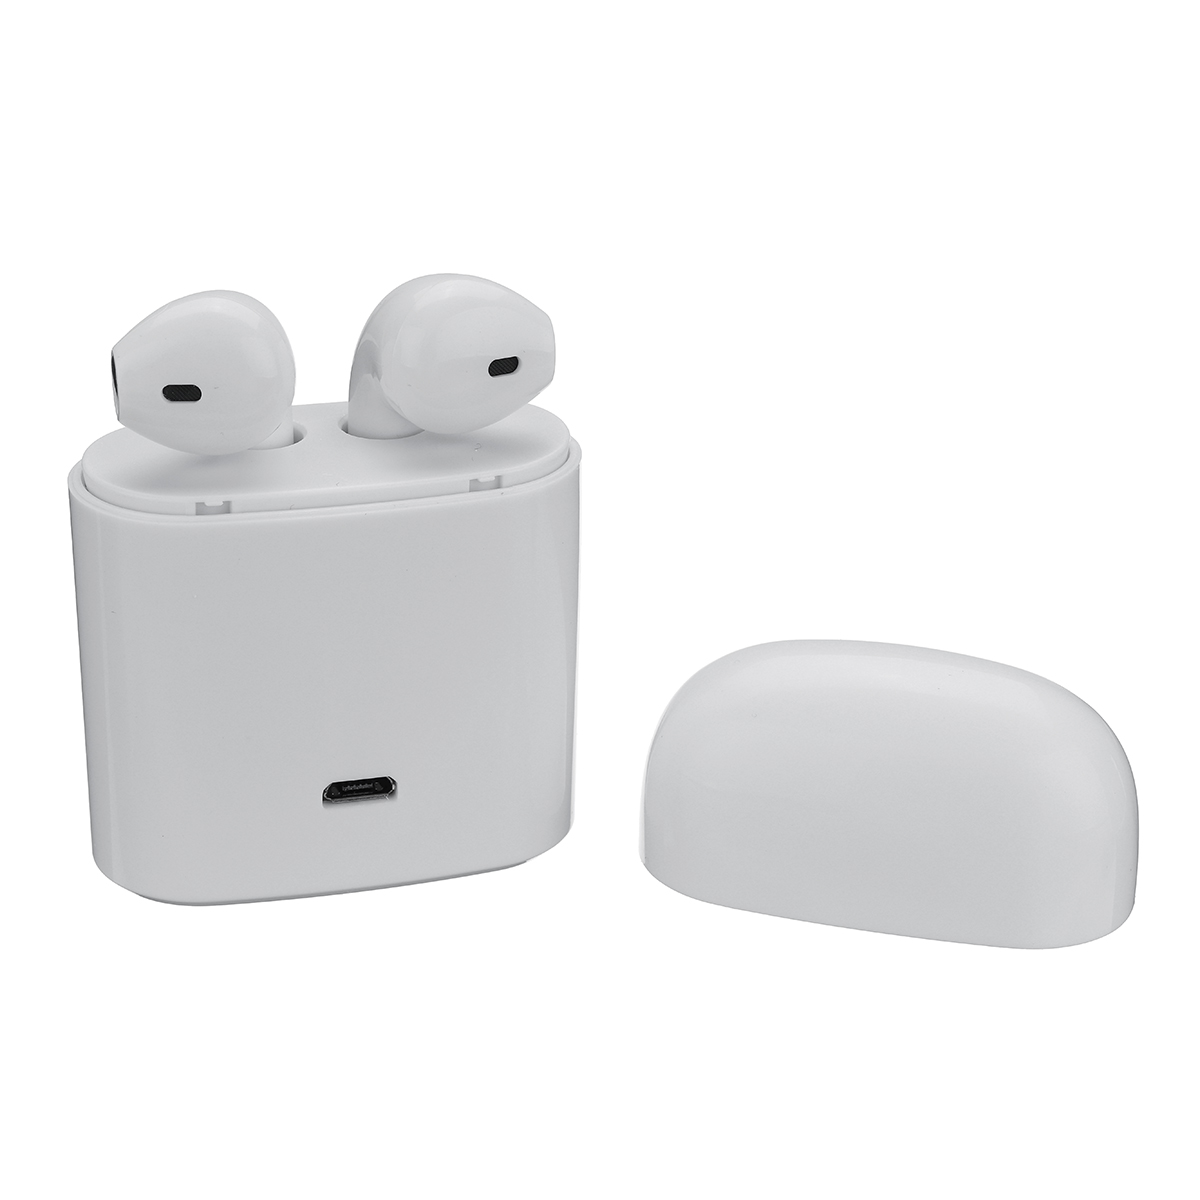 Bluetooth In-Ear Headphone Earbud Wireless Headset Stereo Earpiece Earphone With Noise Canceling Mic for iPhone/Samsung Galaxy